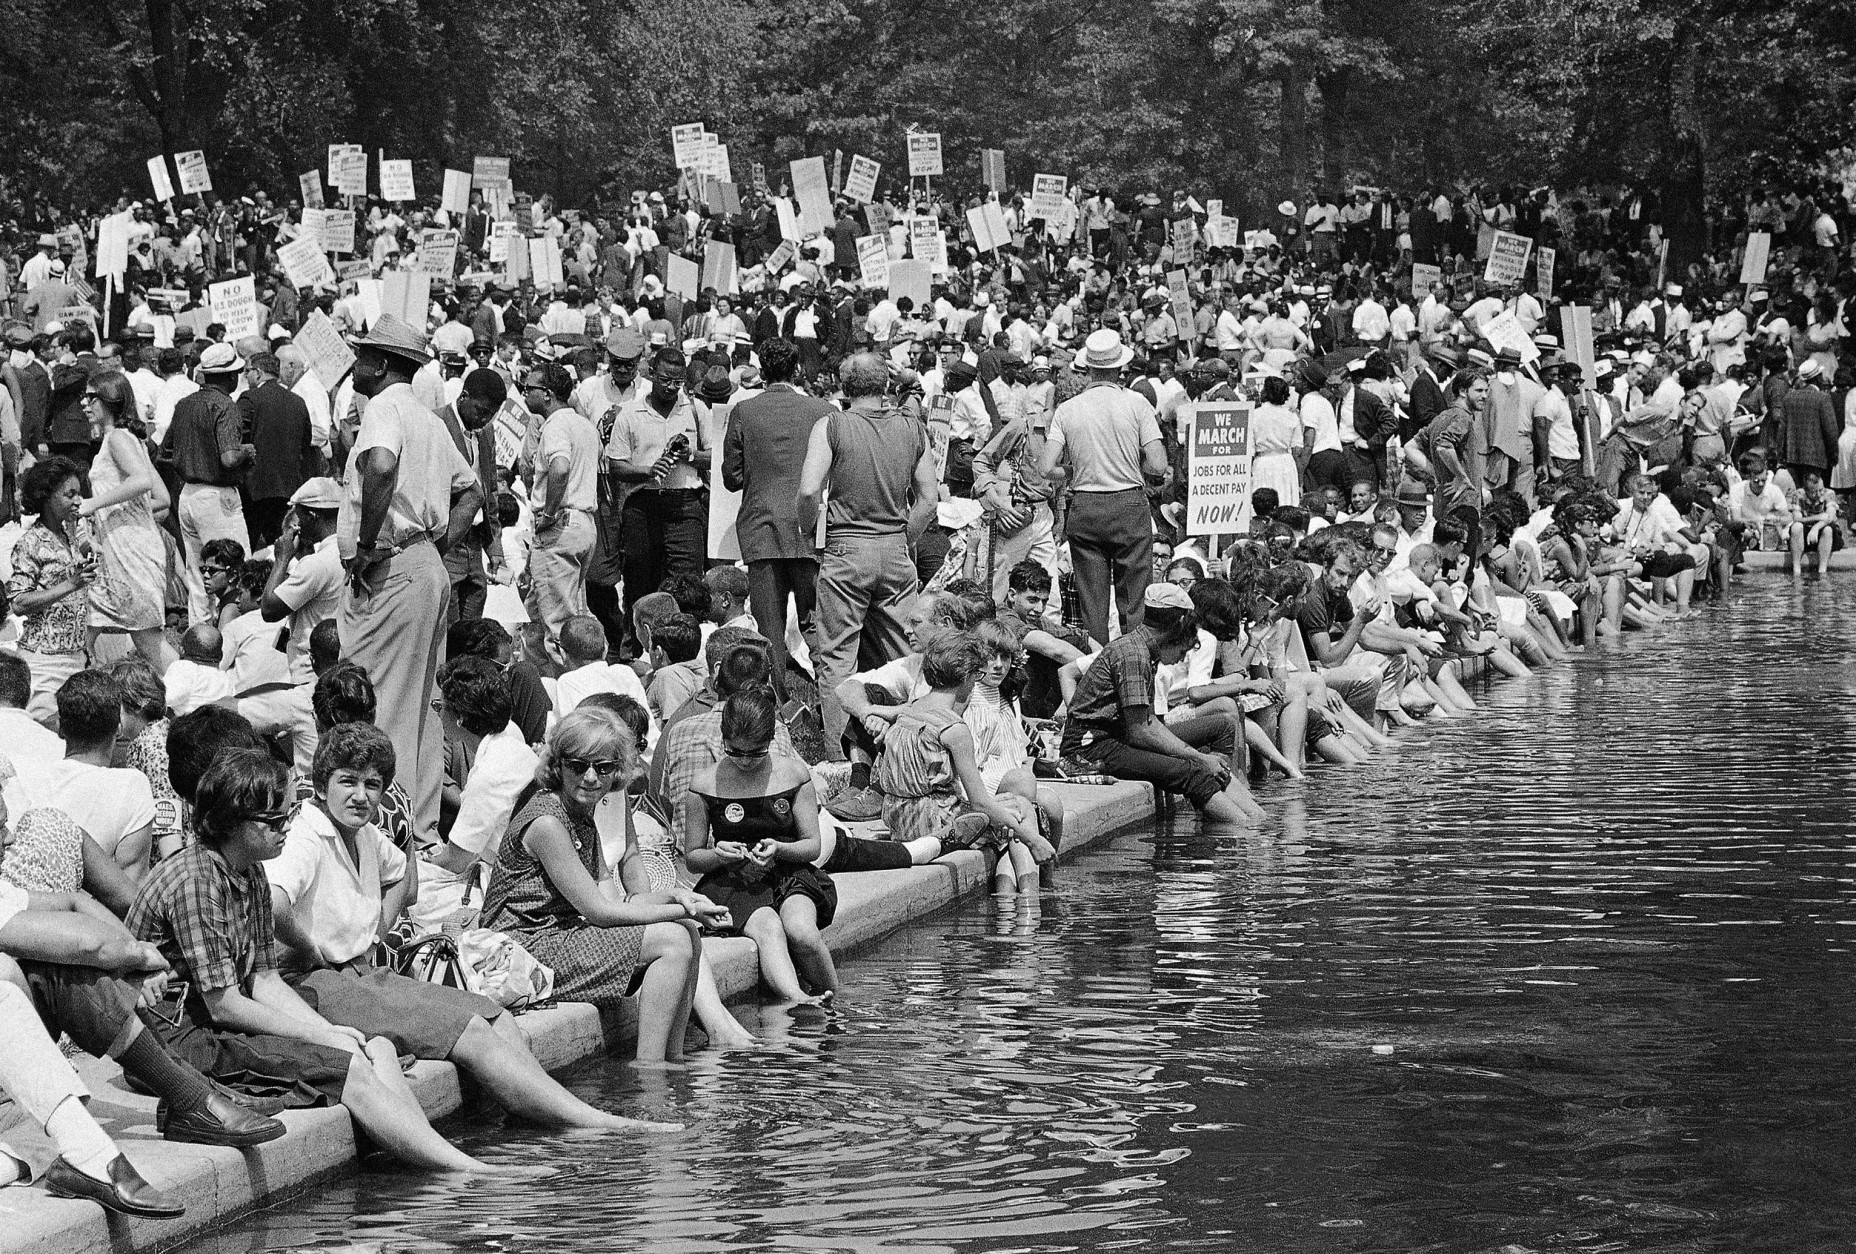 A crowd gathers near the reflecting pool in Washington, Aug. 28, 1963, to hear speakers in ceremonies following the March on Washington parade through the Capitol streets. (AP Photo)